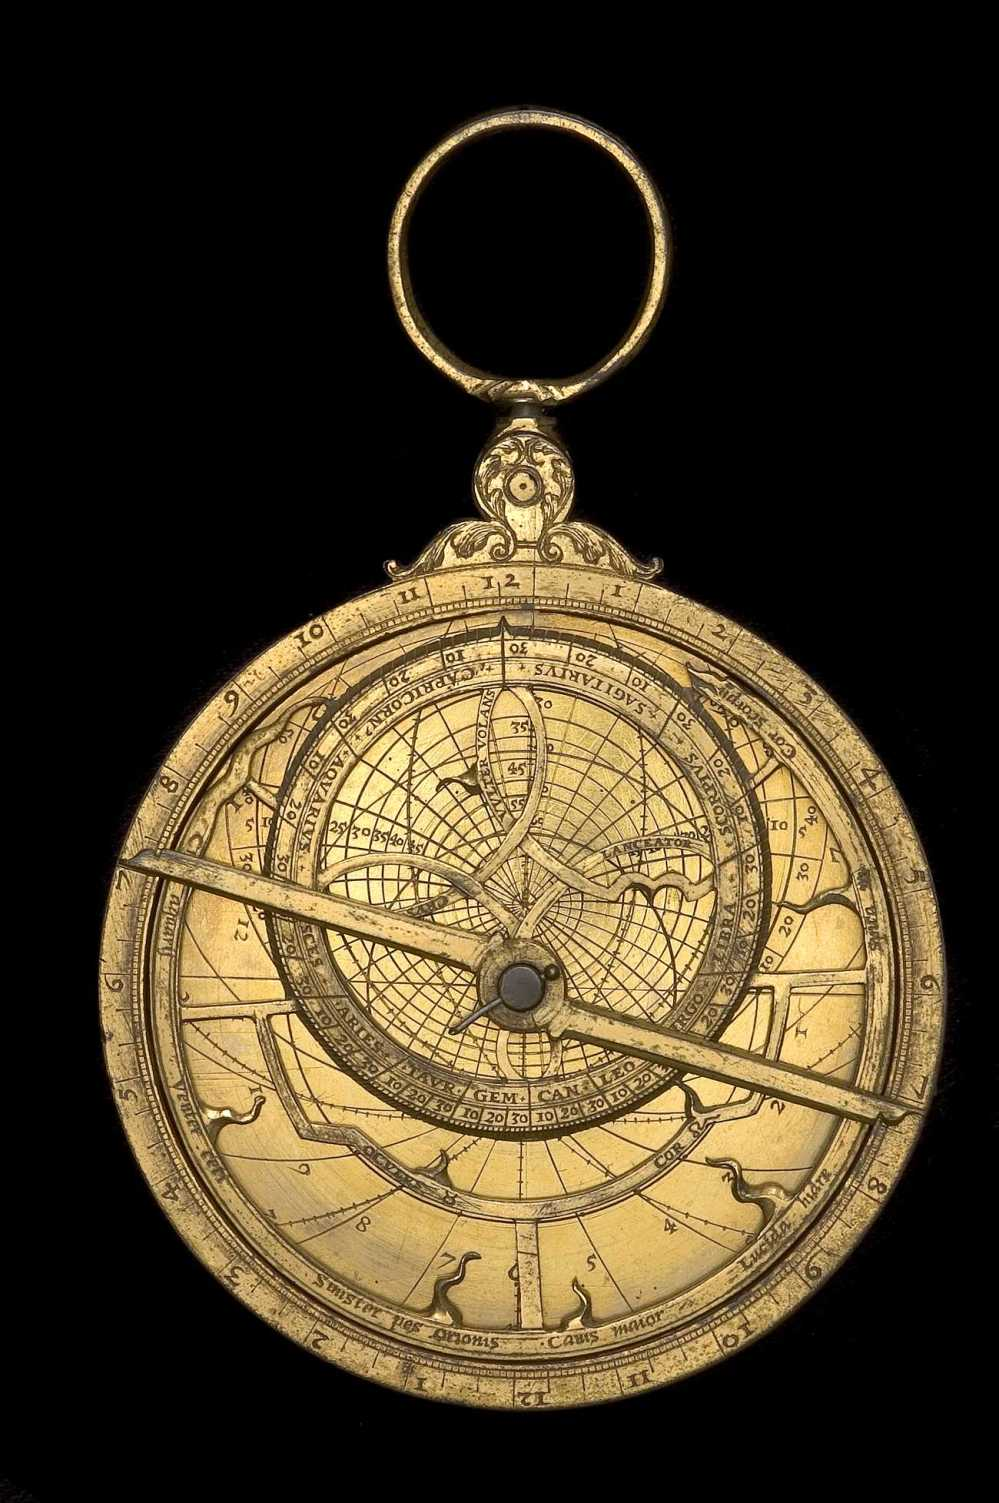 preview image for Astrolabe, partly by Humphrey Cole, London, c. 1590